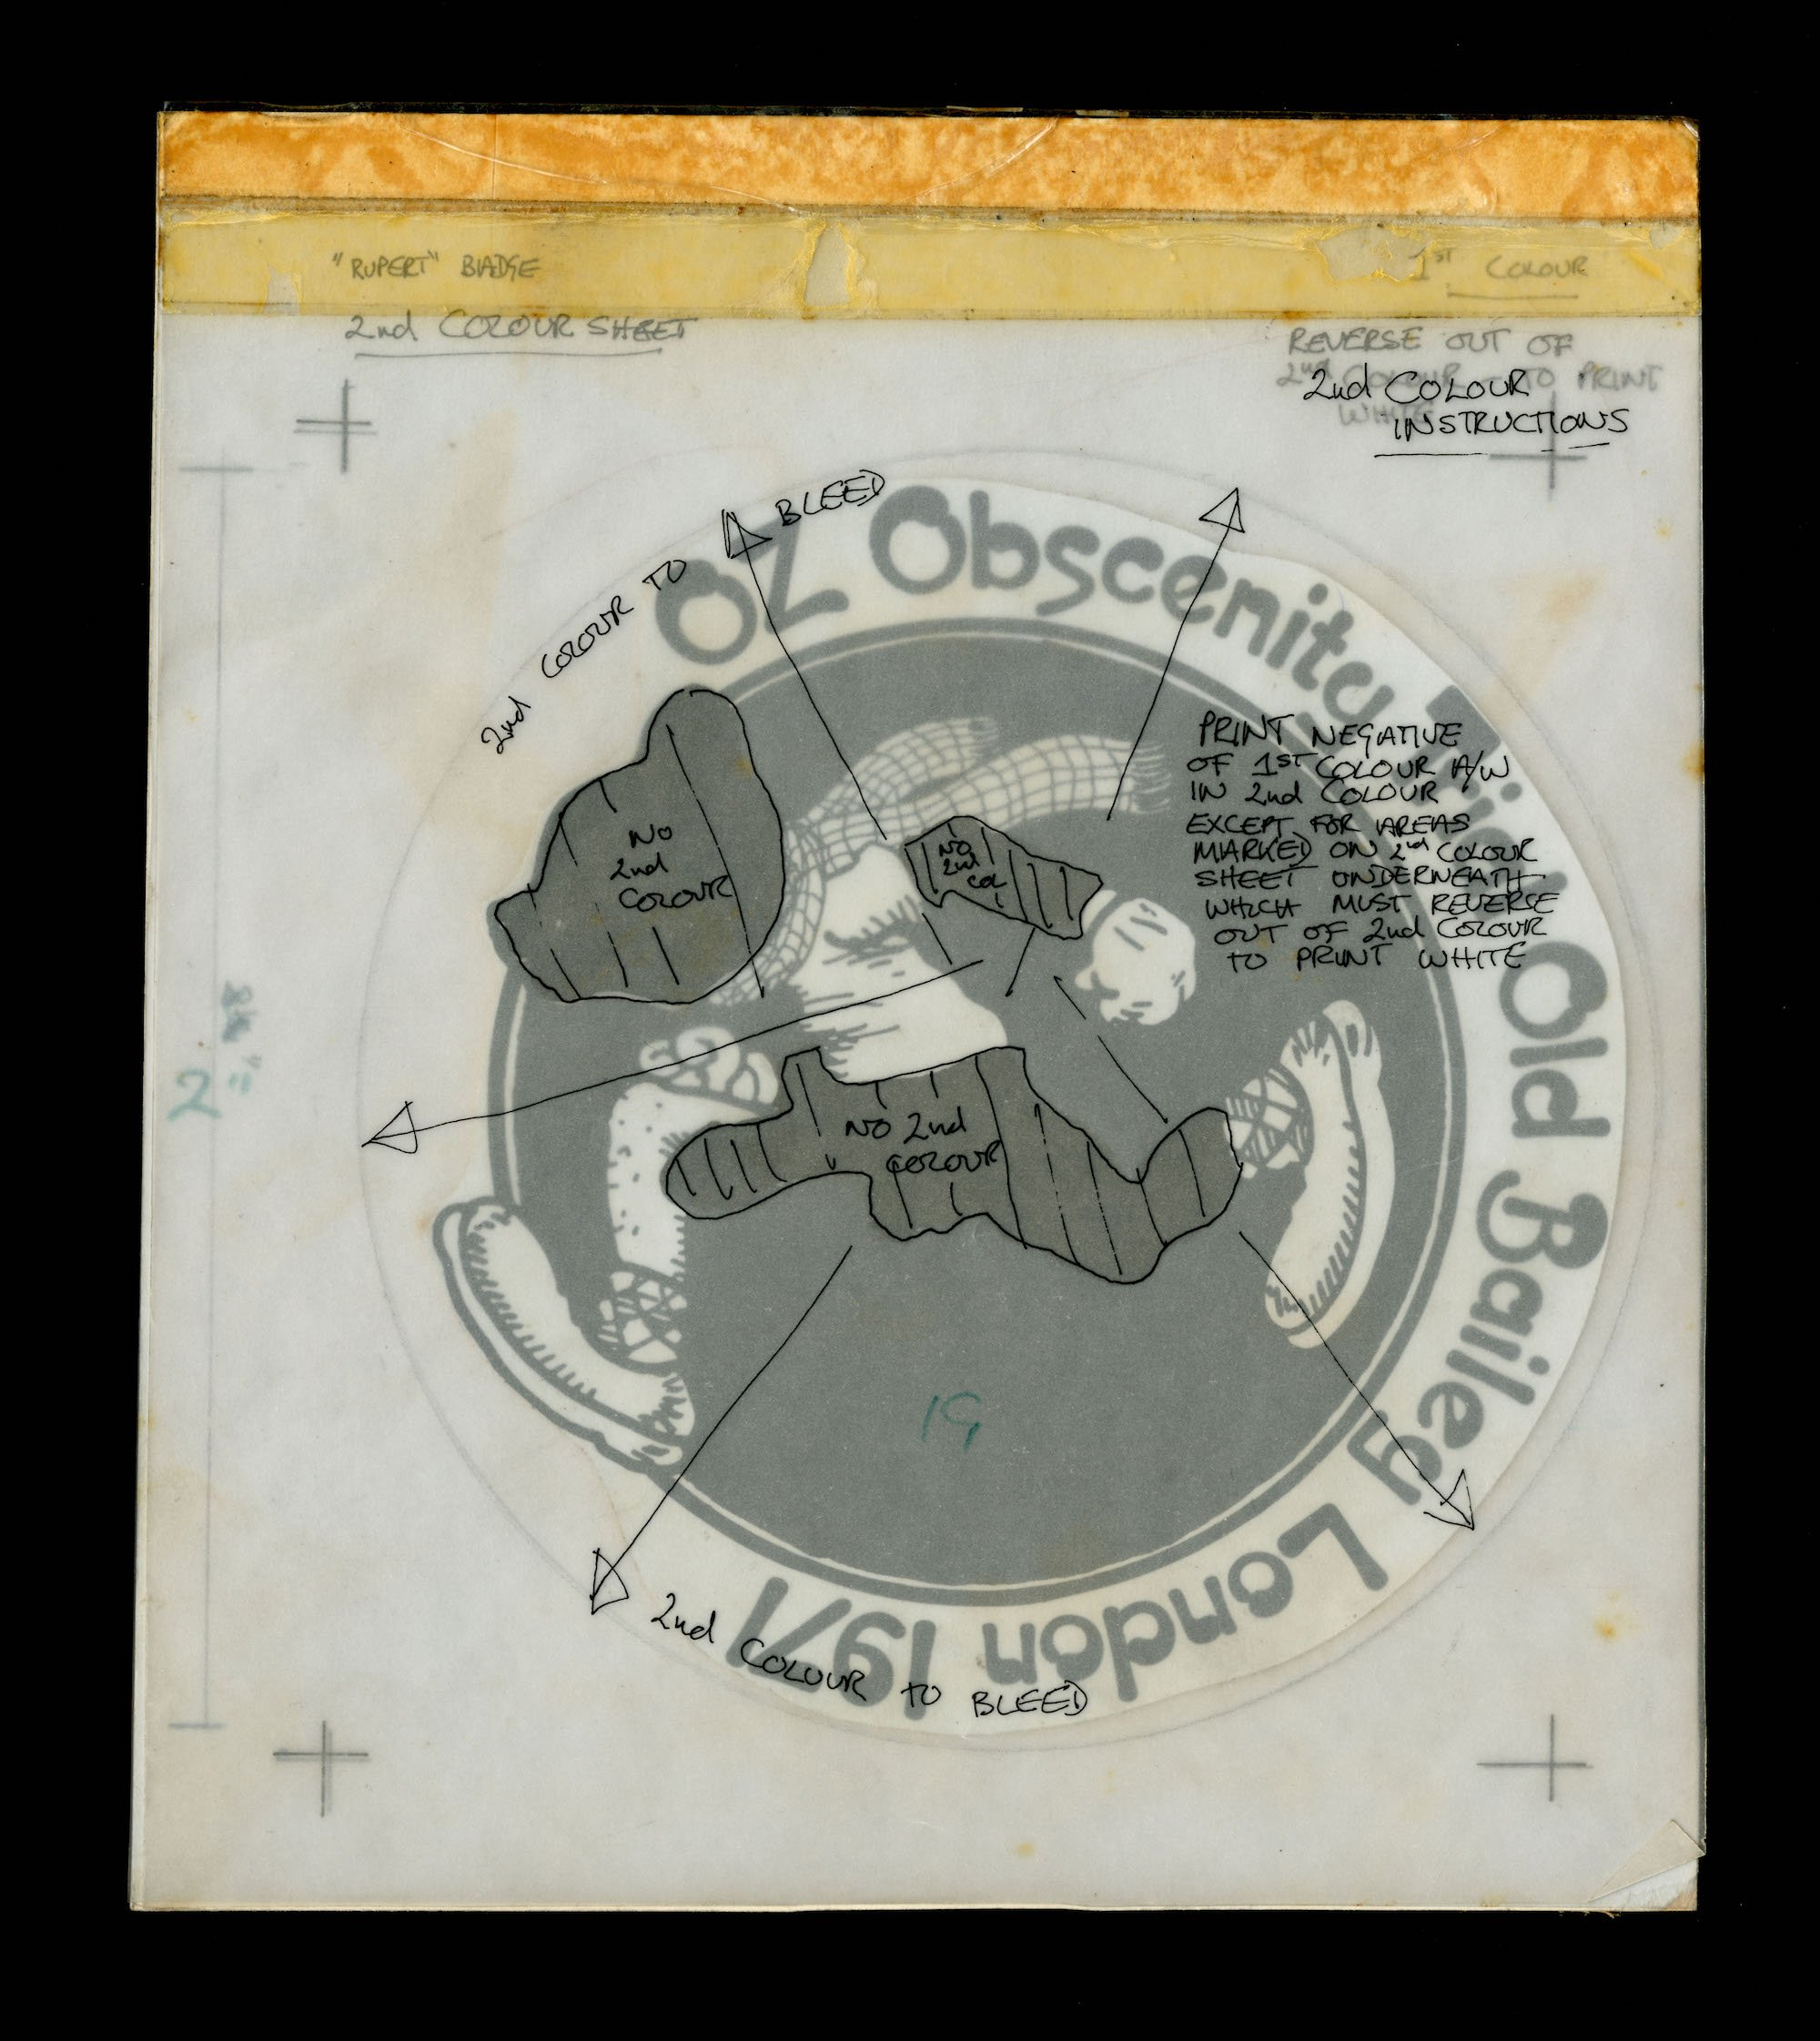 Oz Obscenity Trial campaign image design with mark-up, 1971 © V&A